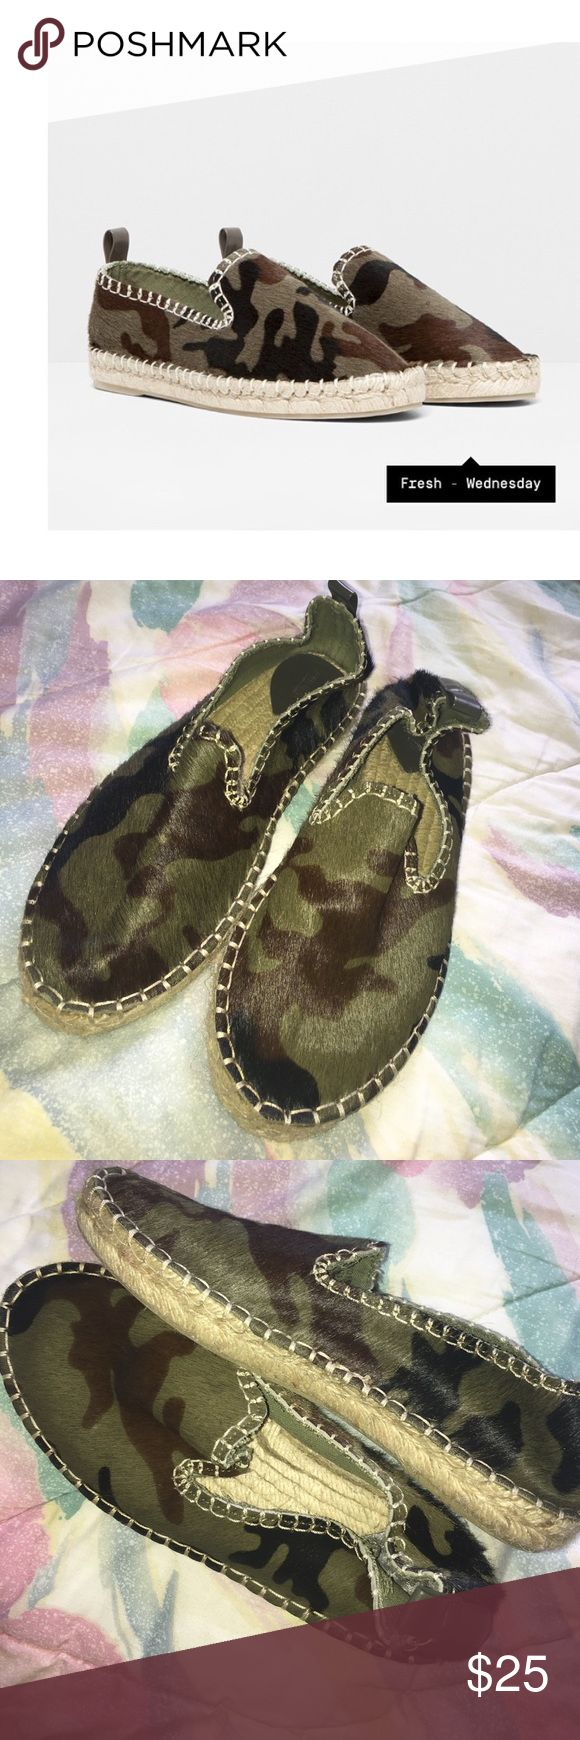 Pull&bear Army Camo Espadrilles Super cute camo espadrilles they are a euro size 37 but American size 6 only been worn once practically new. Pull&Bear Shoes Espadrilles